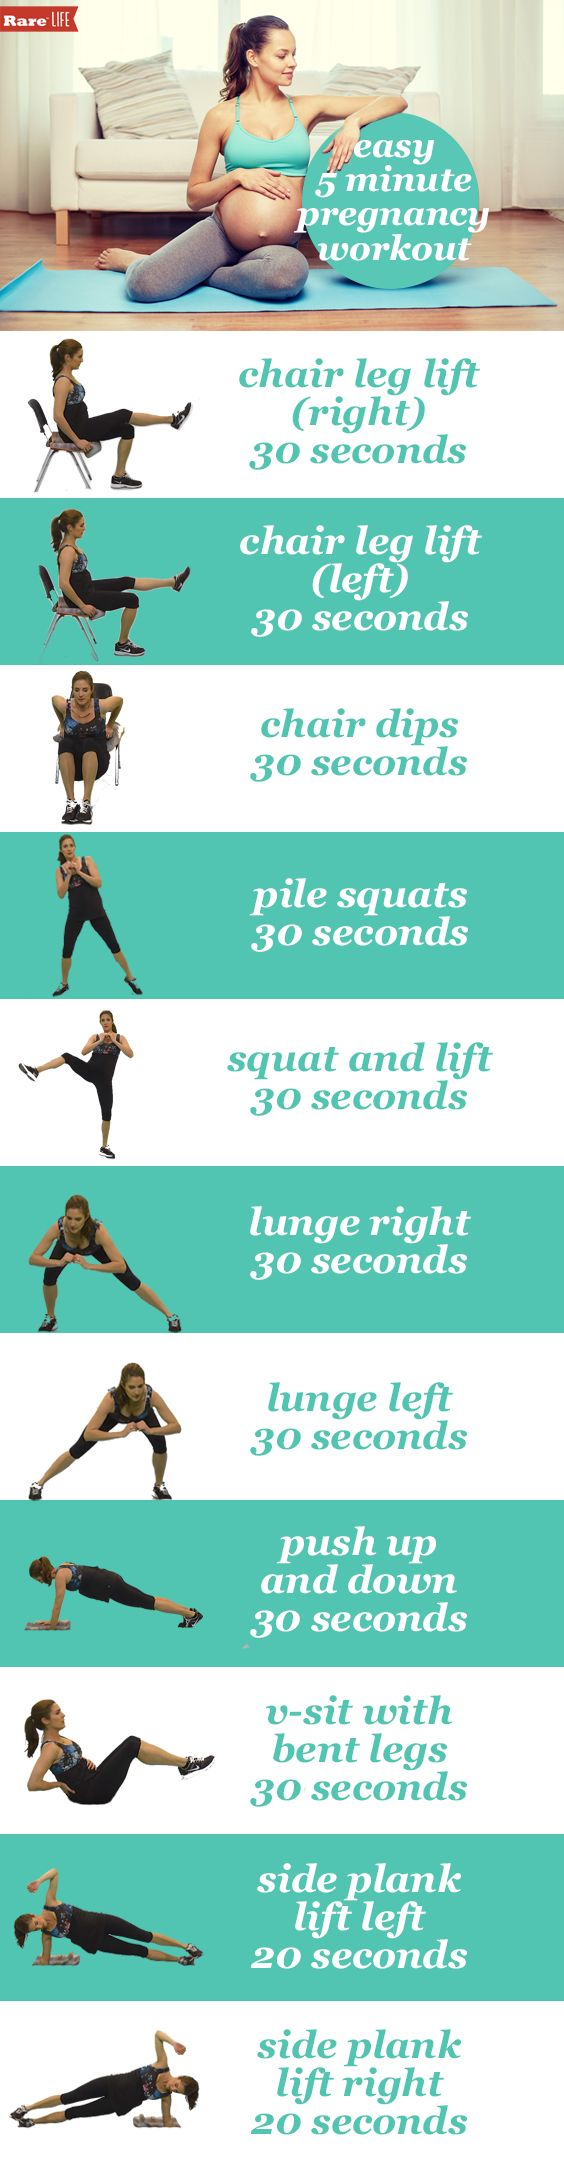 @hcat's ultimate #Pregnancy fitness guide! The perfect 5 minute #maternity workout! Grab a chair and you are set for a great #workout.